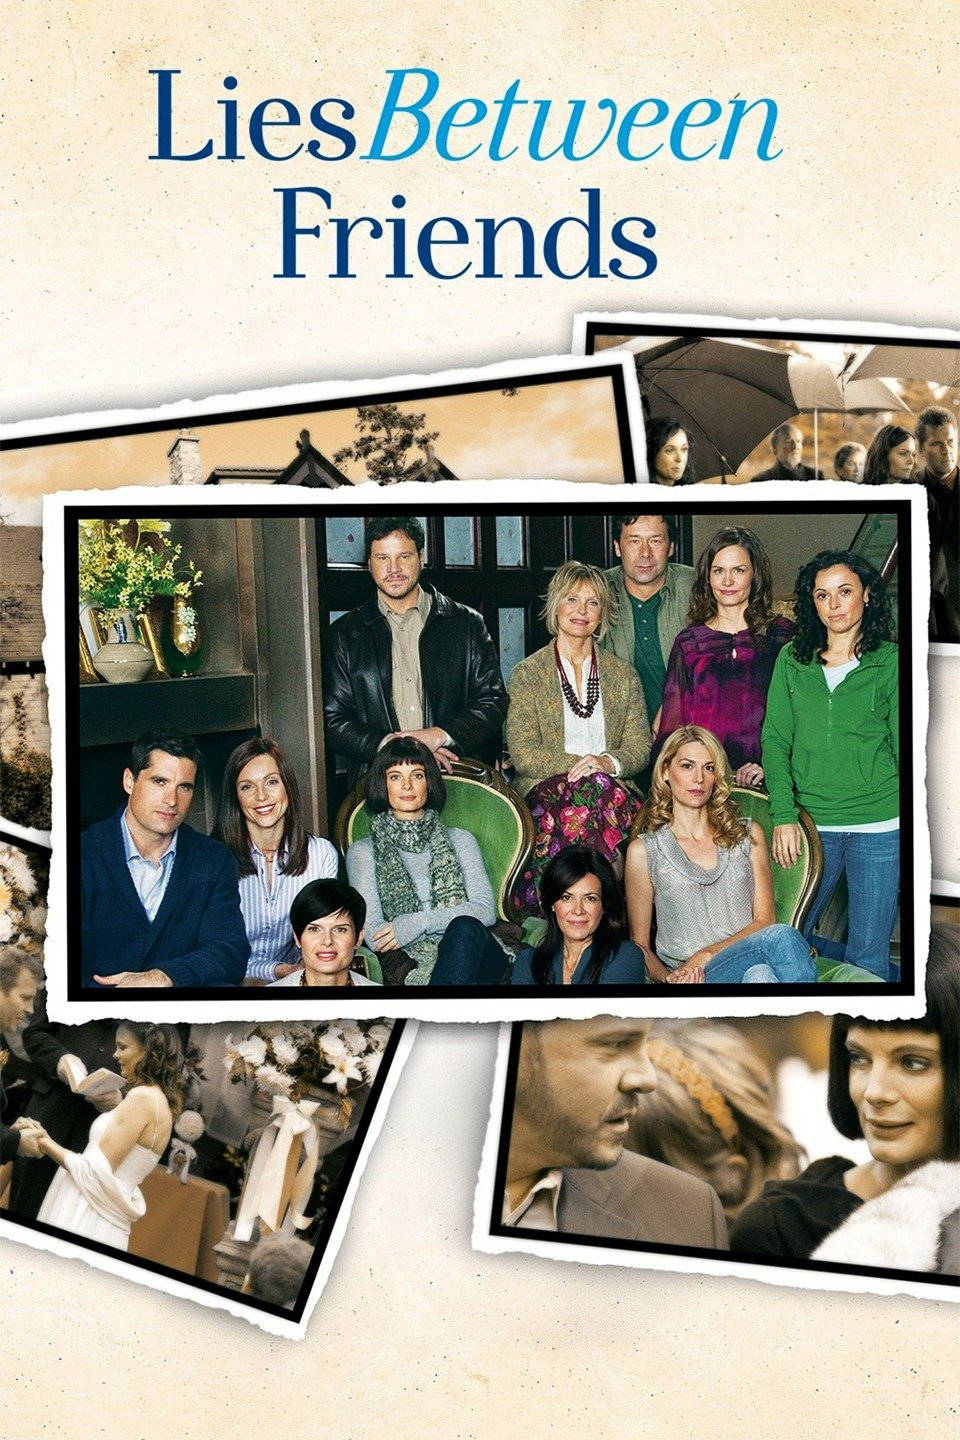 Lies Between Friends (2010)